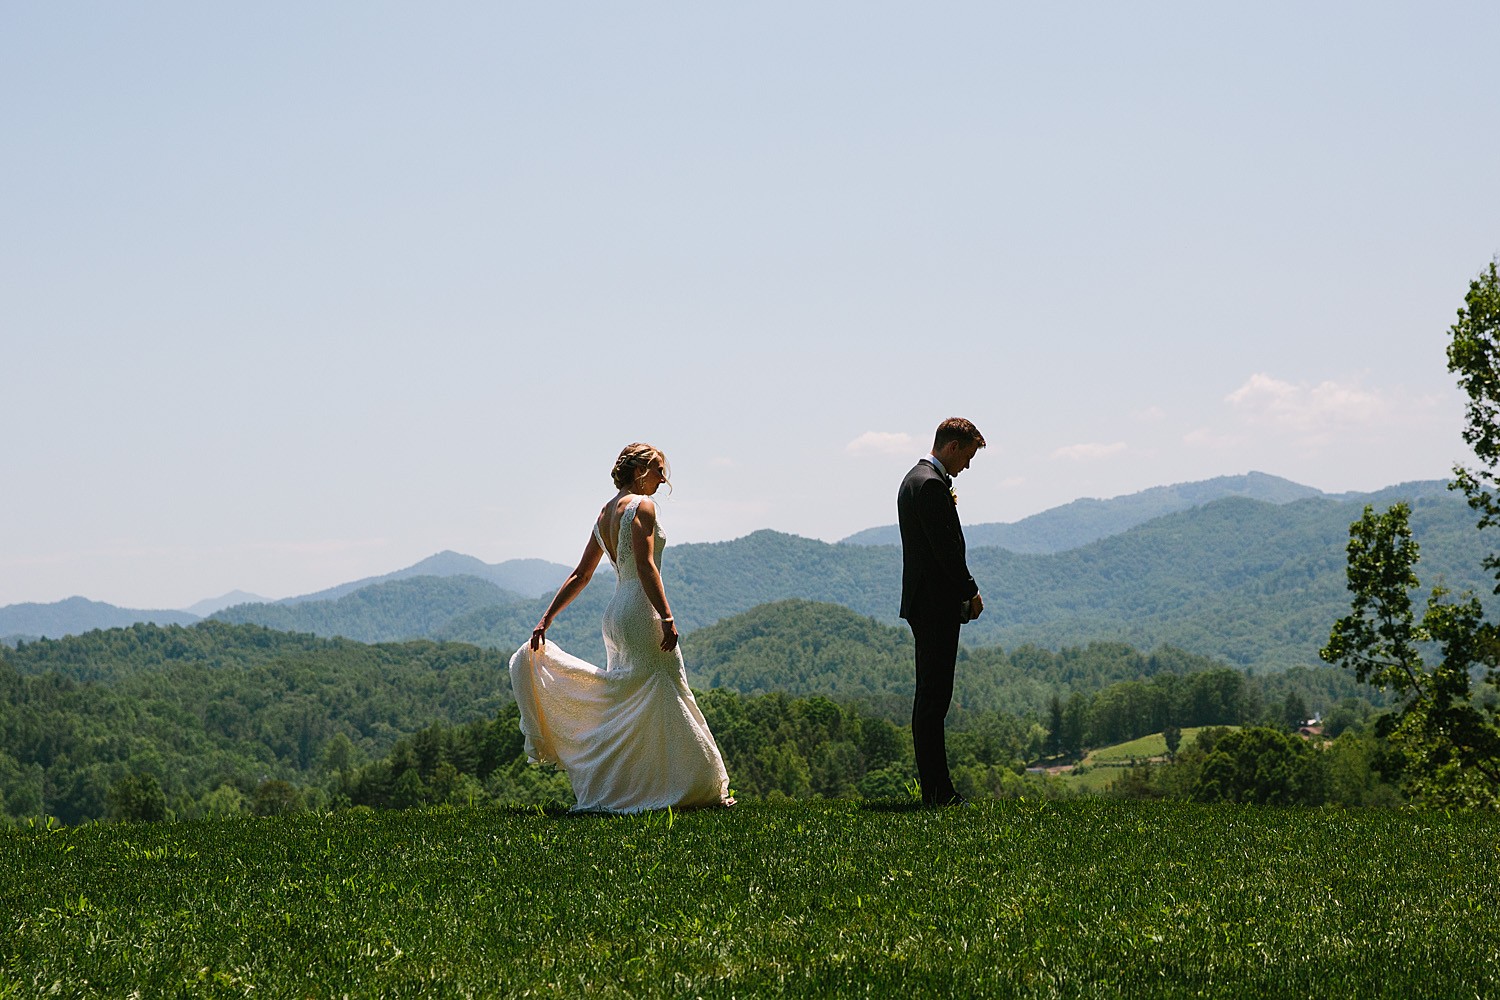 Jeremy-Russell-Asheville-The-Ridge-Wedding-1705-30.jpg